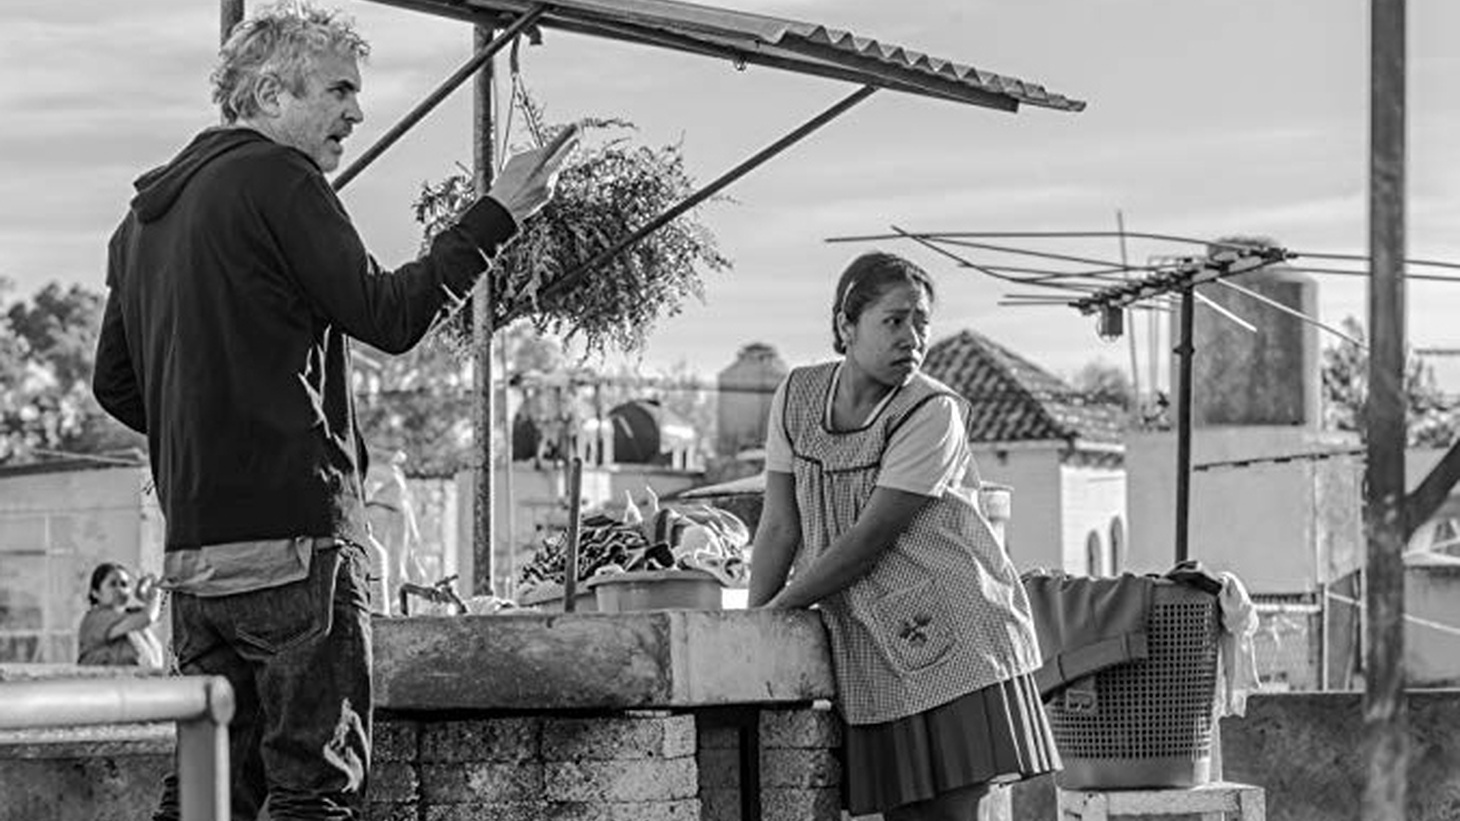 'Roma' director Alfonso Cuarón and star Yalitza Aparicio